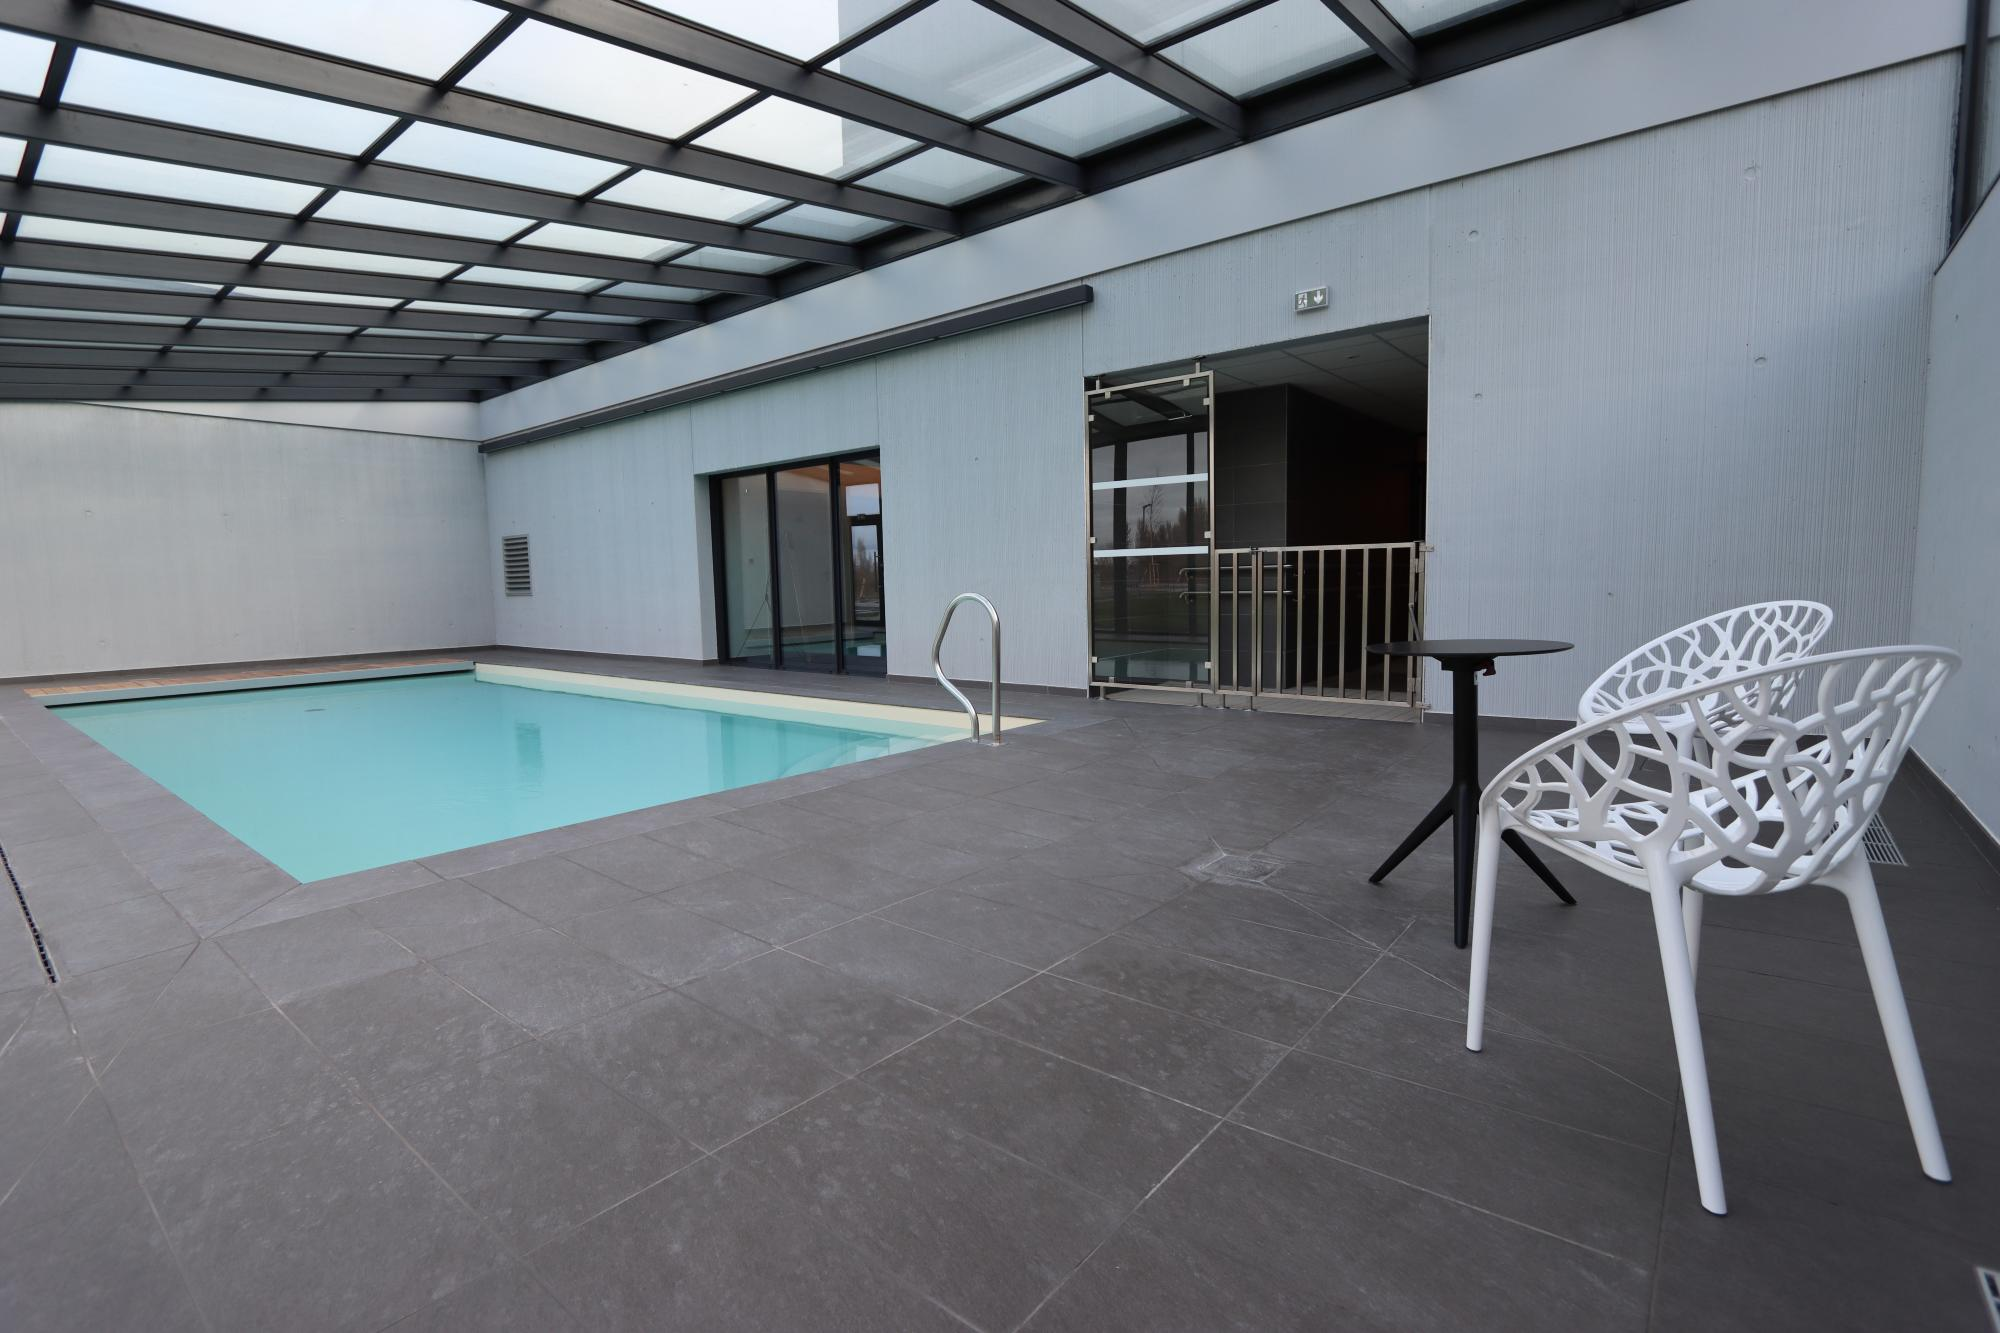 Hotel Eden Spa | Family room access spa and indoor pool